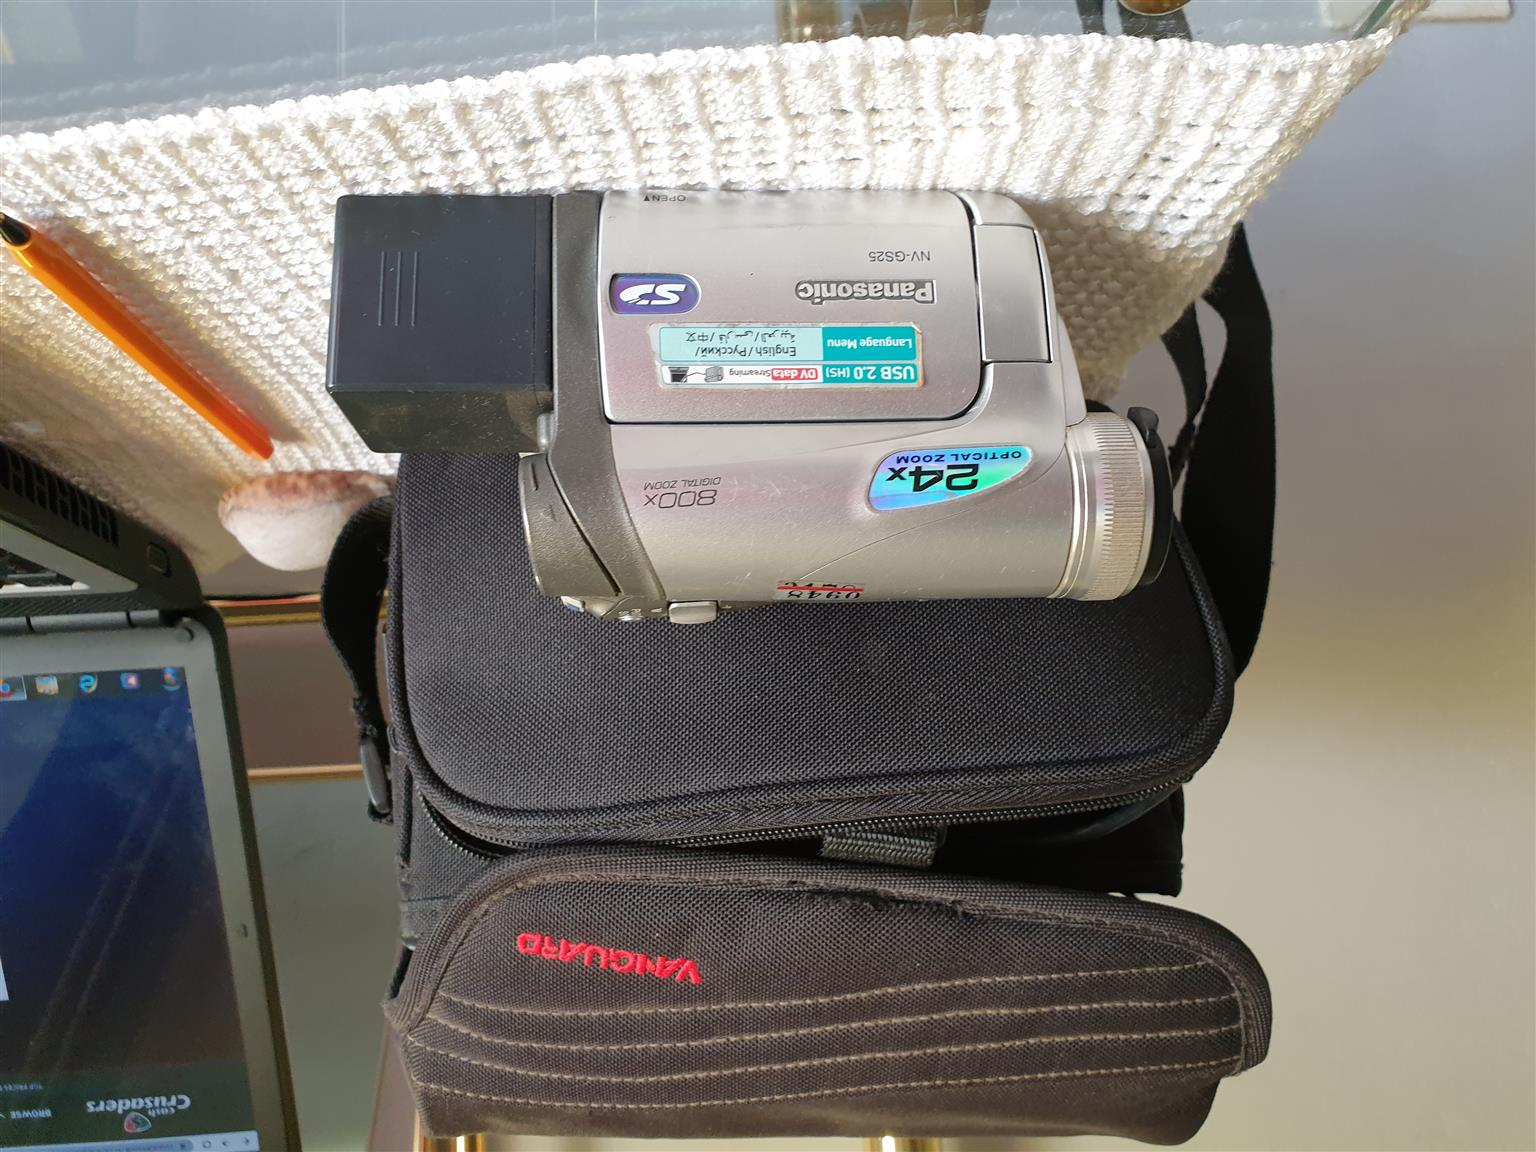 Panasonic Video Camera with case and charger